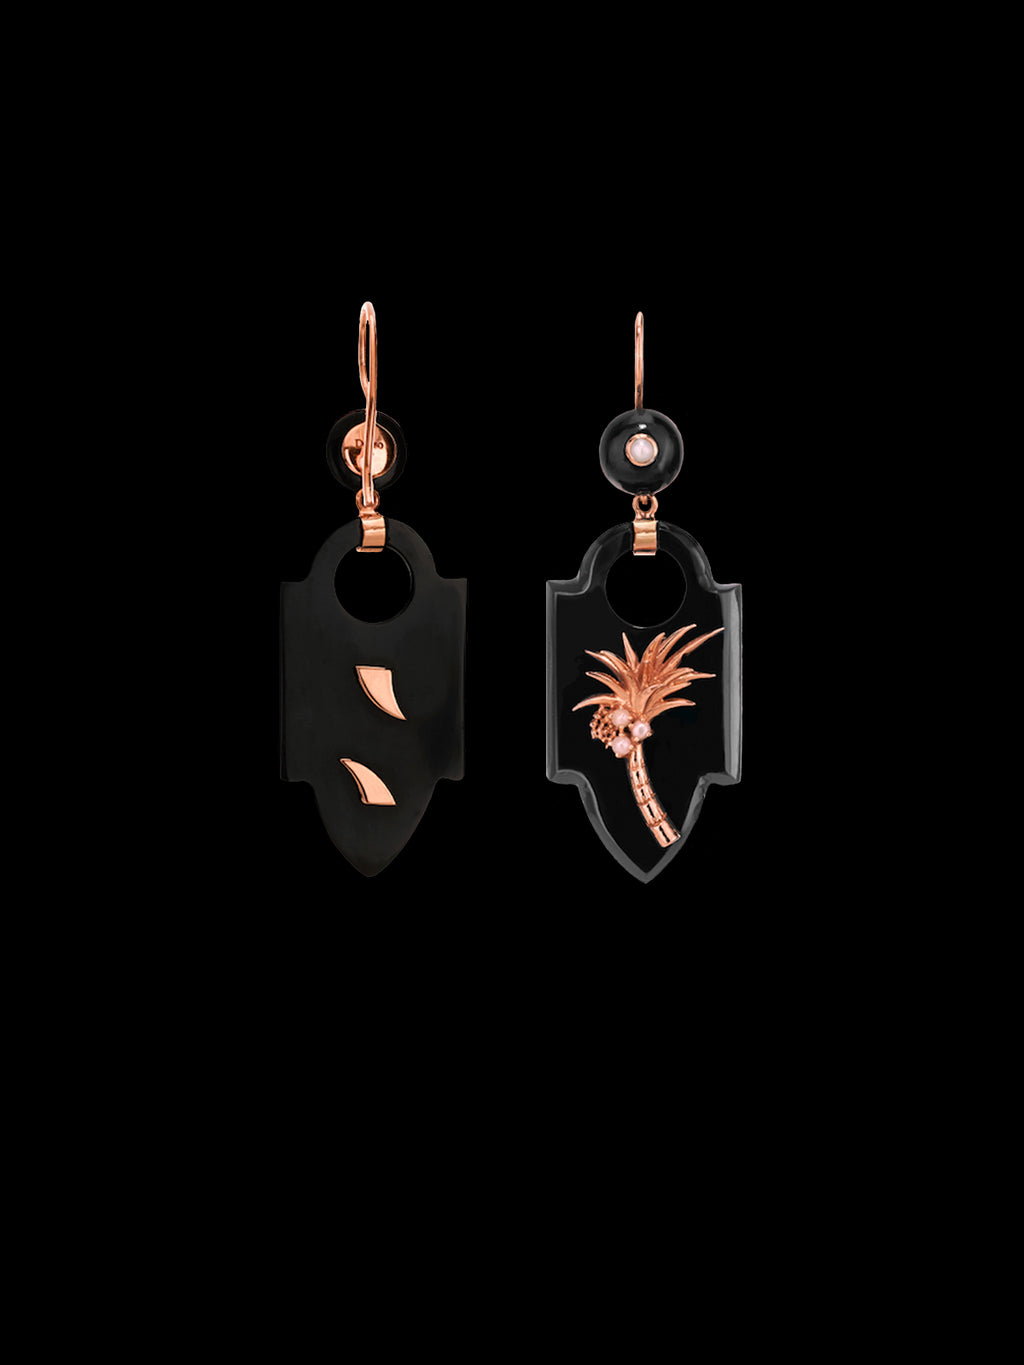 Deco Onyx Palm Earrings with Pearls